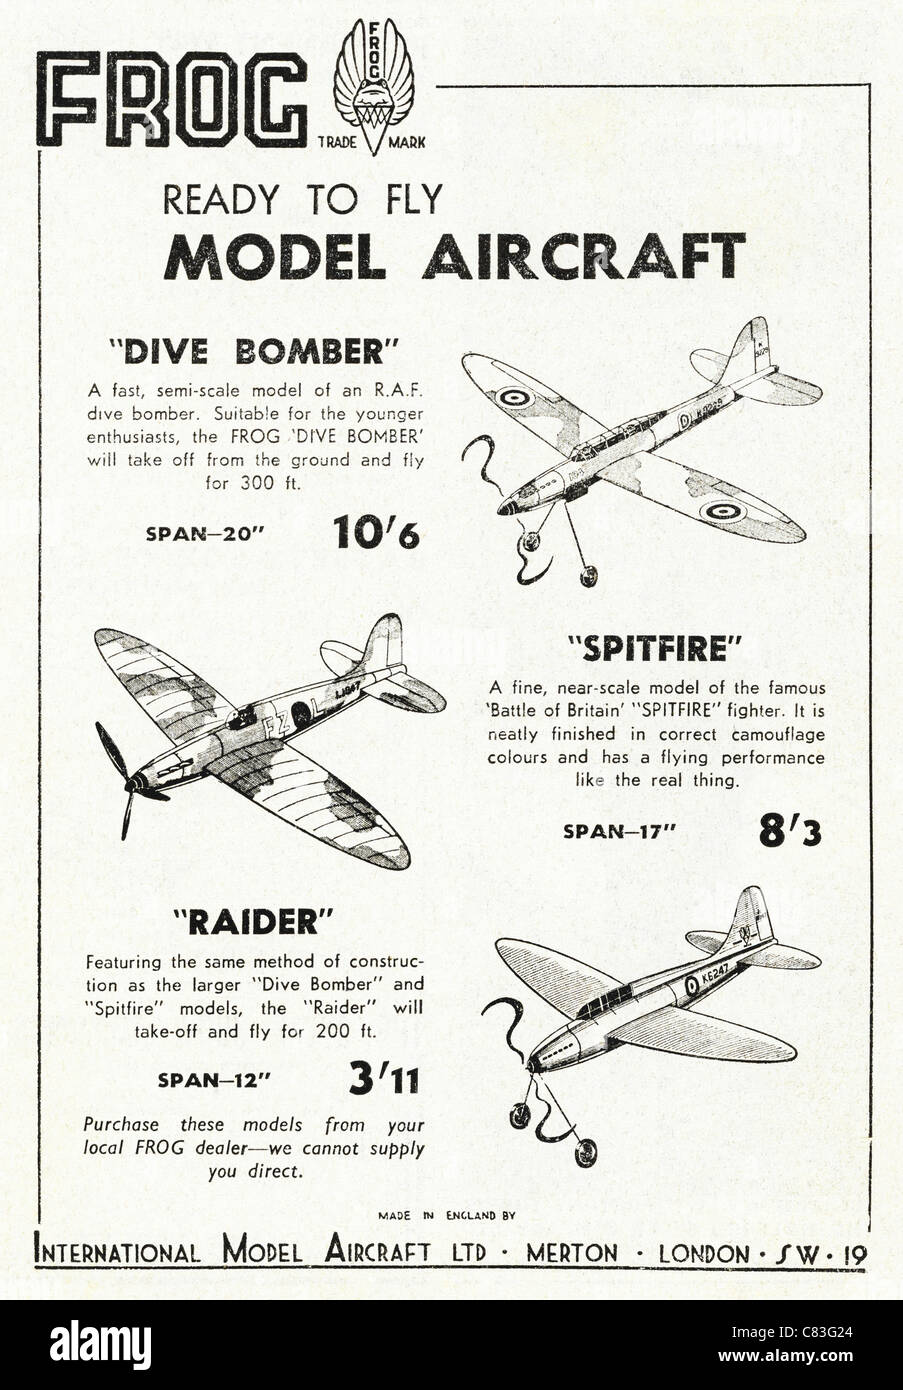 Hobby magazine advertisement circa 1948 advertising FROG ready to fly model aircraft - Stock Image